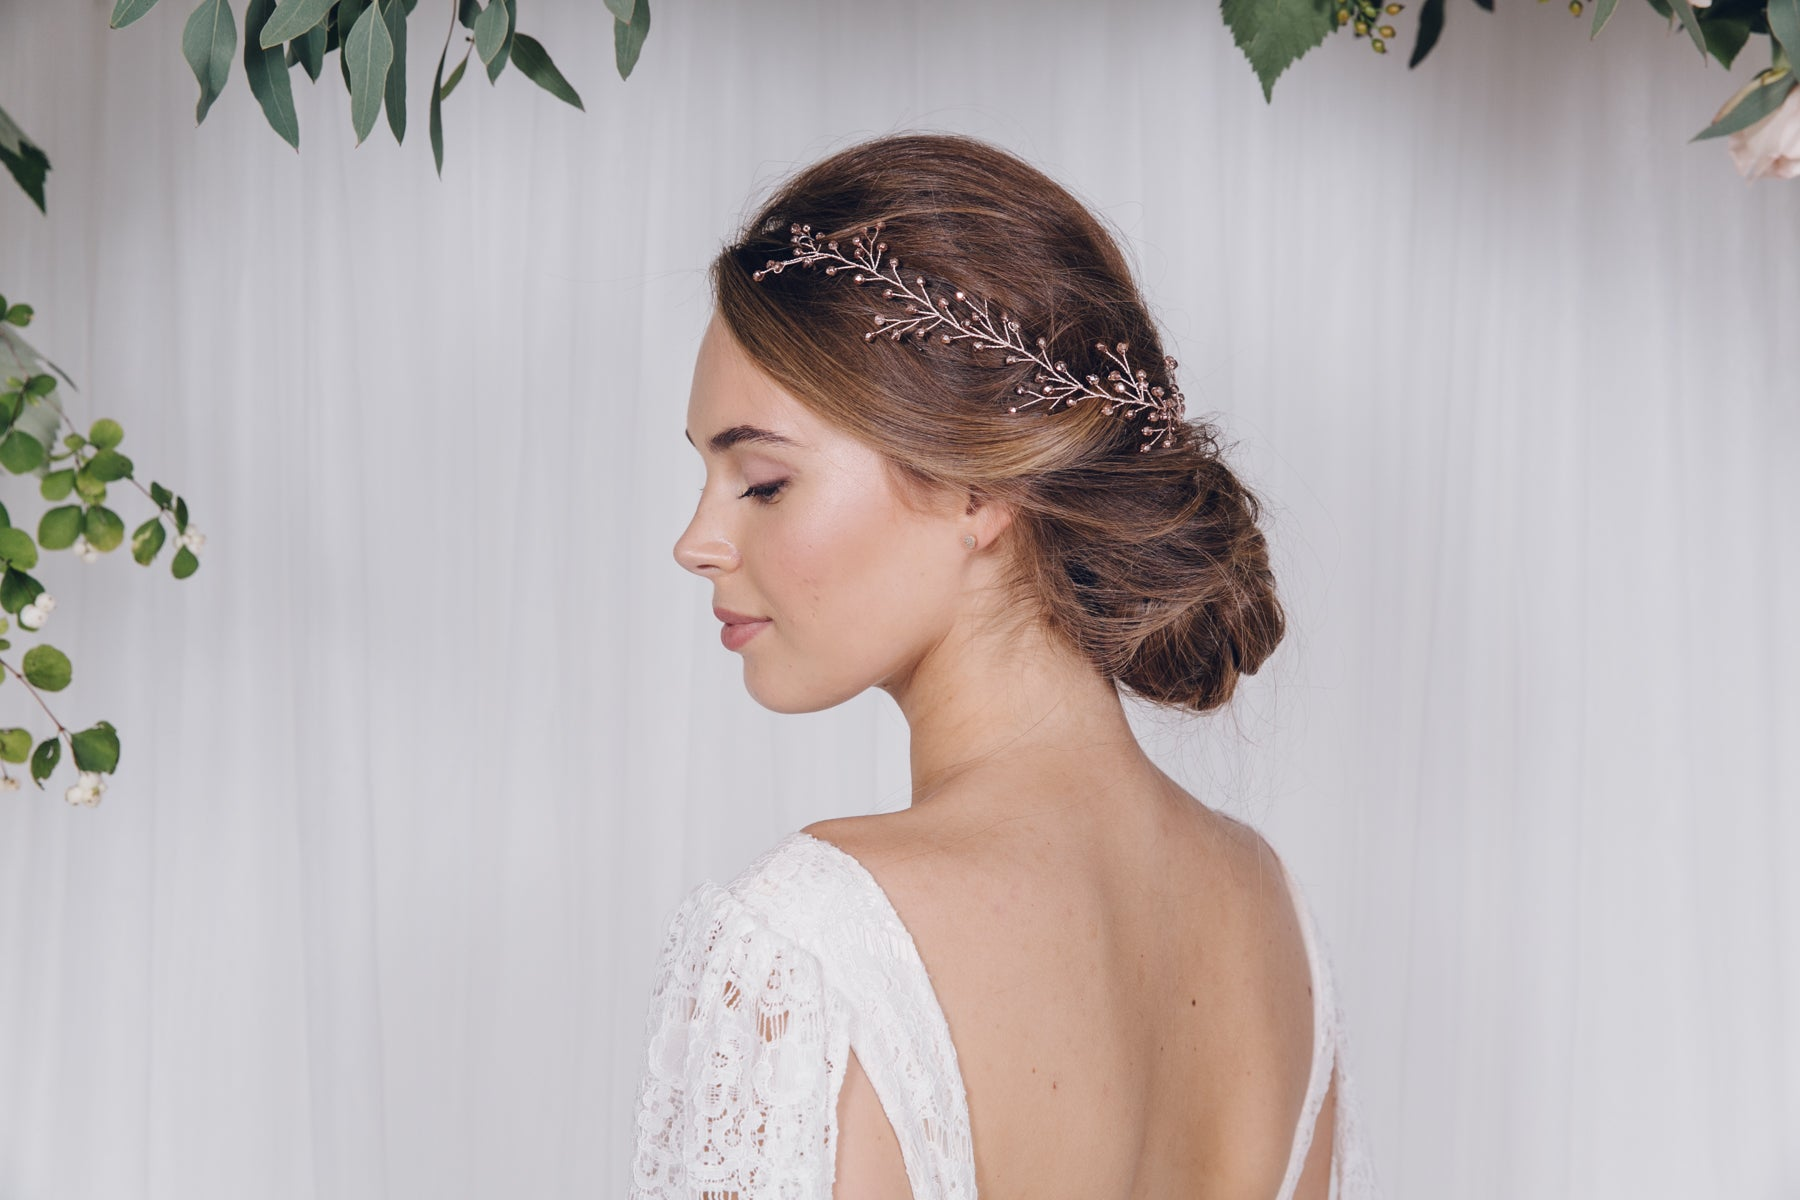 Rose Gold Hair Accessories for Weddings twig style hair vine